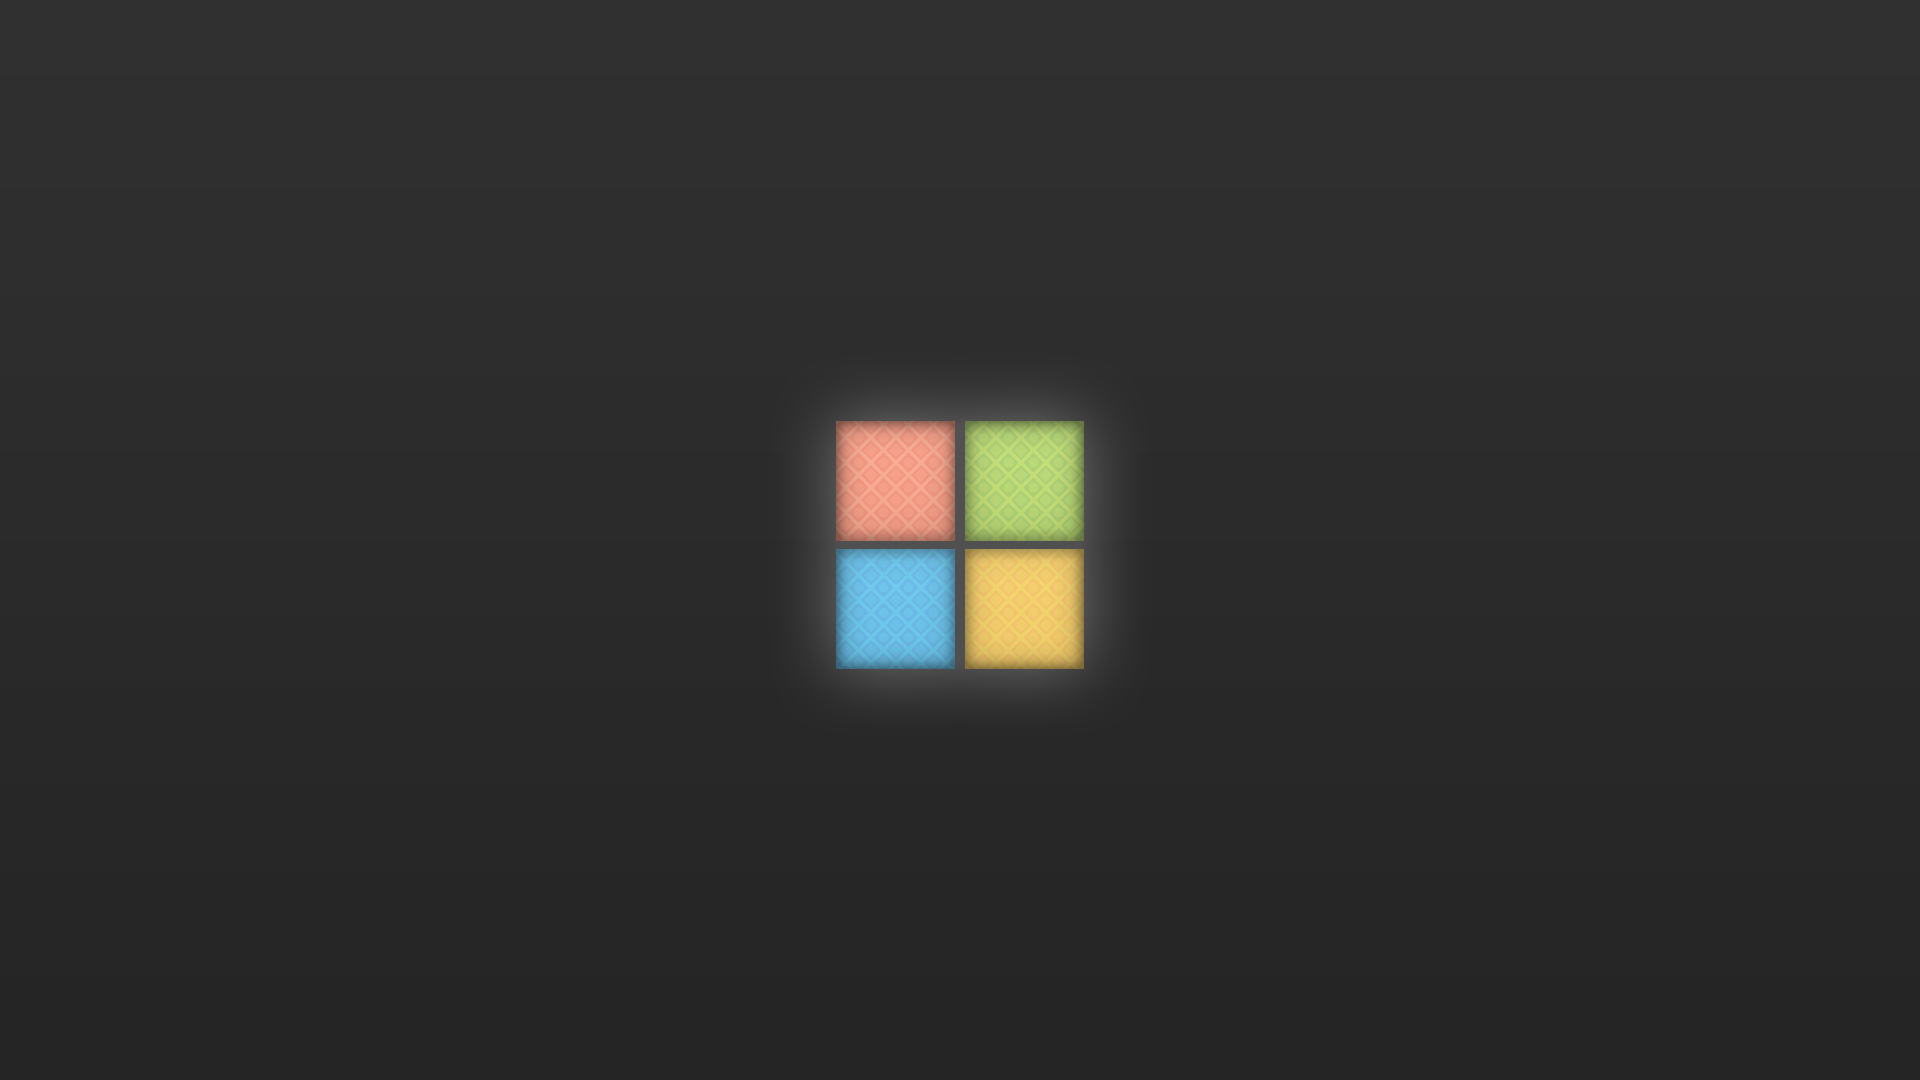 microsoft windows wallpapers by gifteddeviant - photo #22